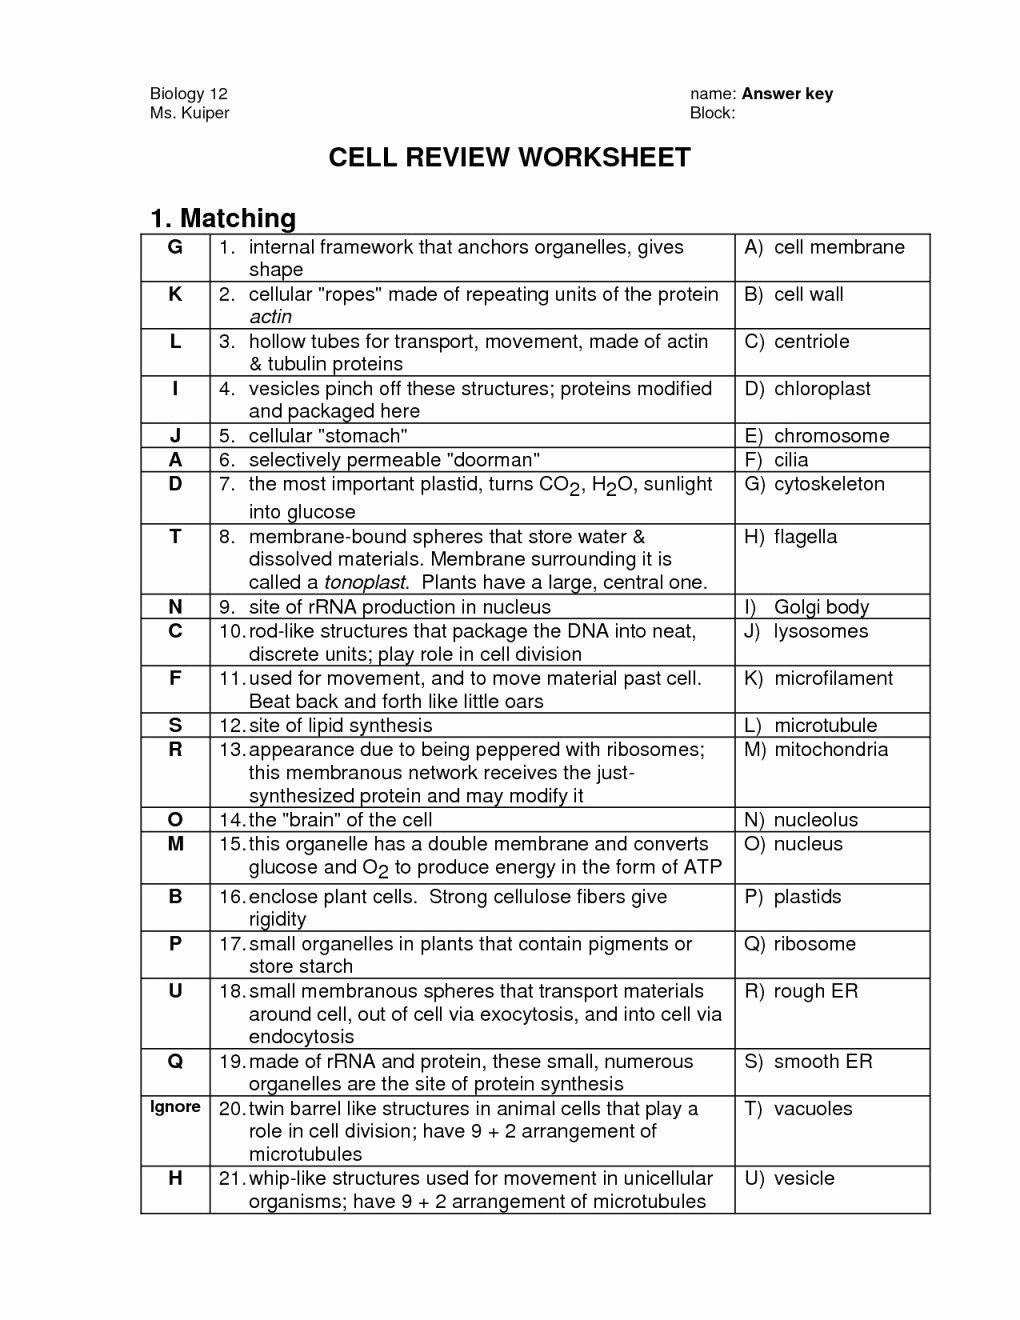 Cell organelles Worksheet Answer Key Luxury Cell organelles Worksheet Answer Key